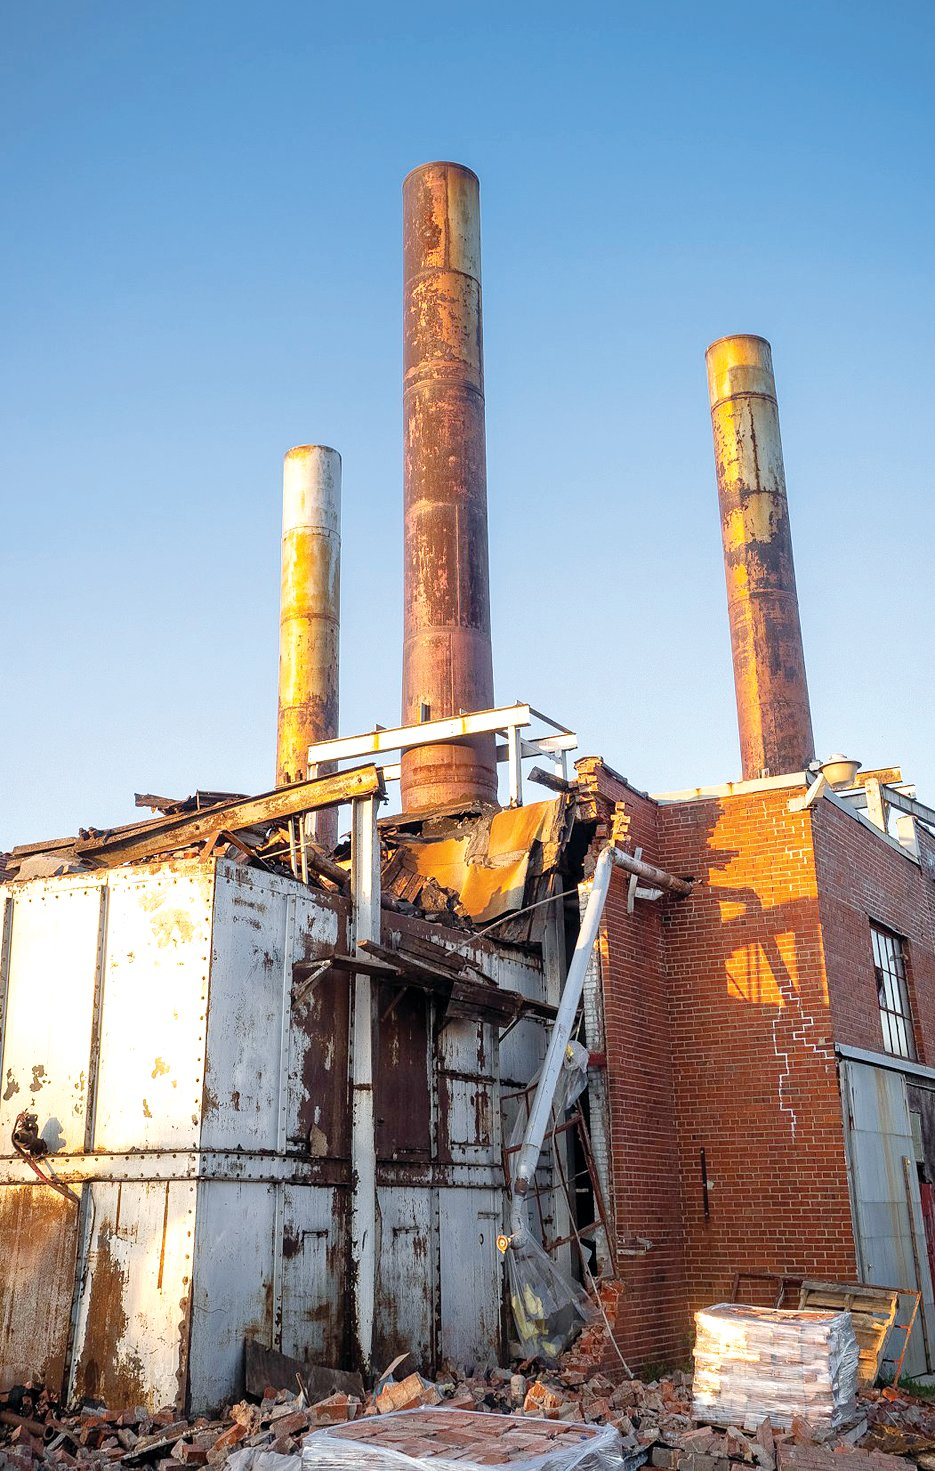 Smokestacks from the Litchfield Creamery building jut into a cloudless blue sky earlier in the demolition process. The stacks are now down, with the salvageable material shipped away for recycling.